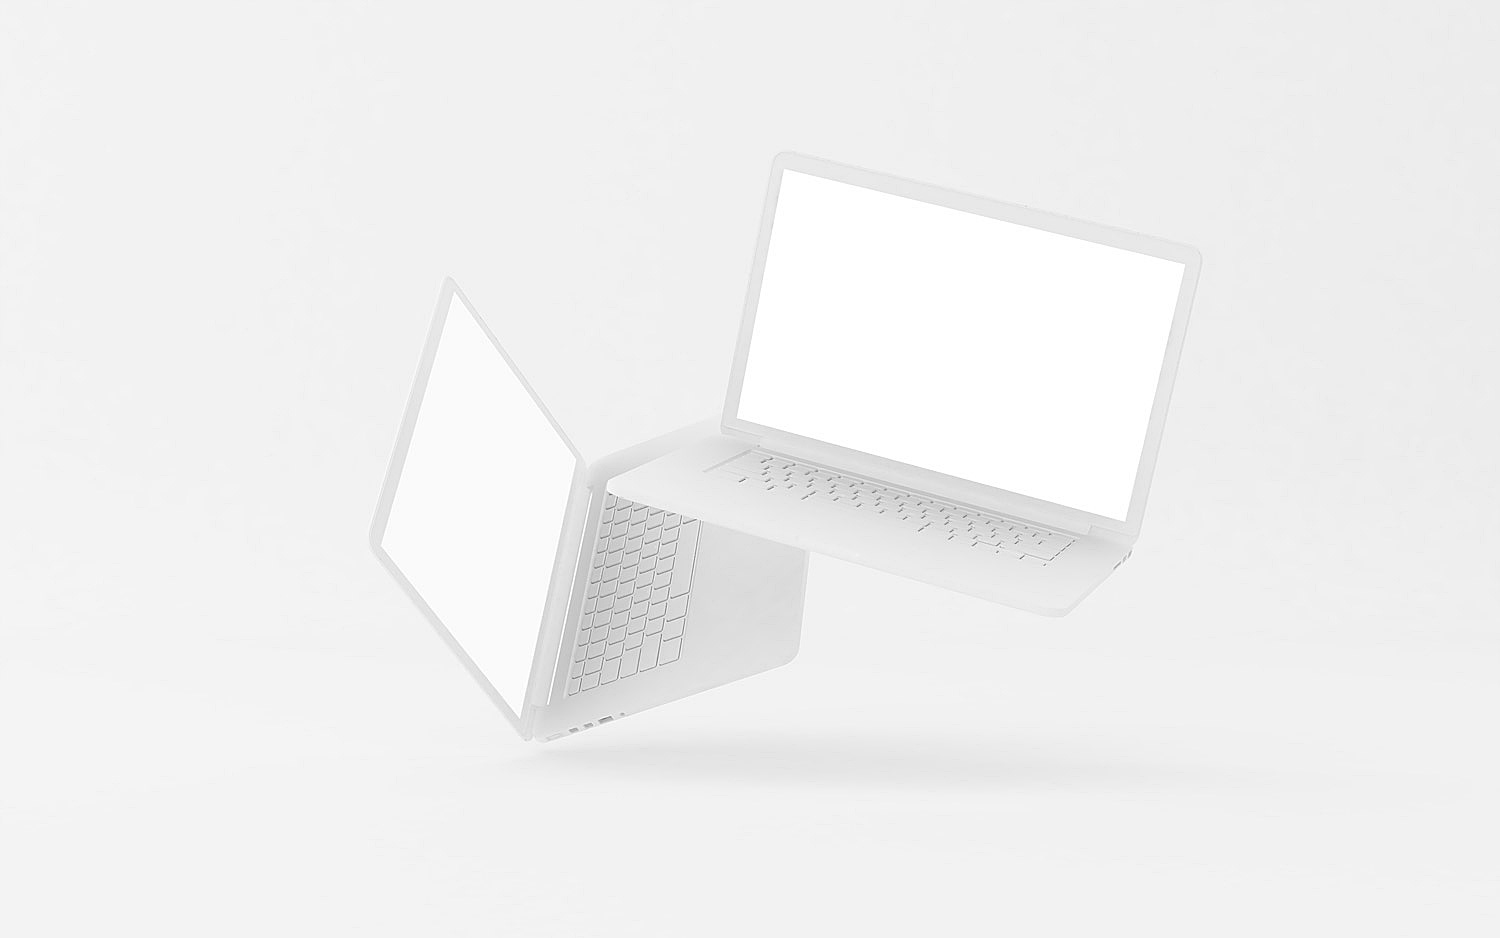 MacBook Pro Mockup Free. MacBook screen